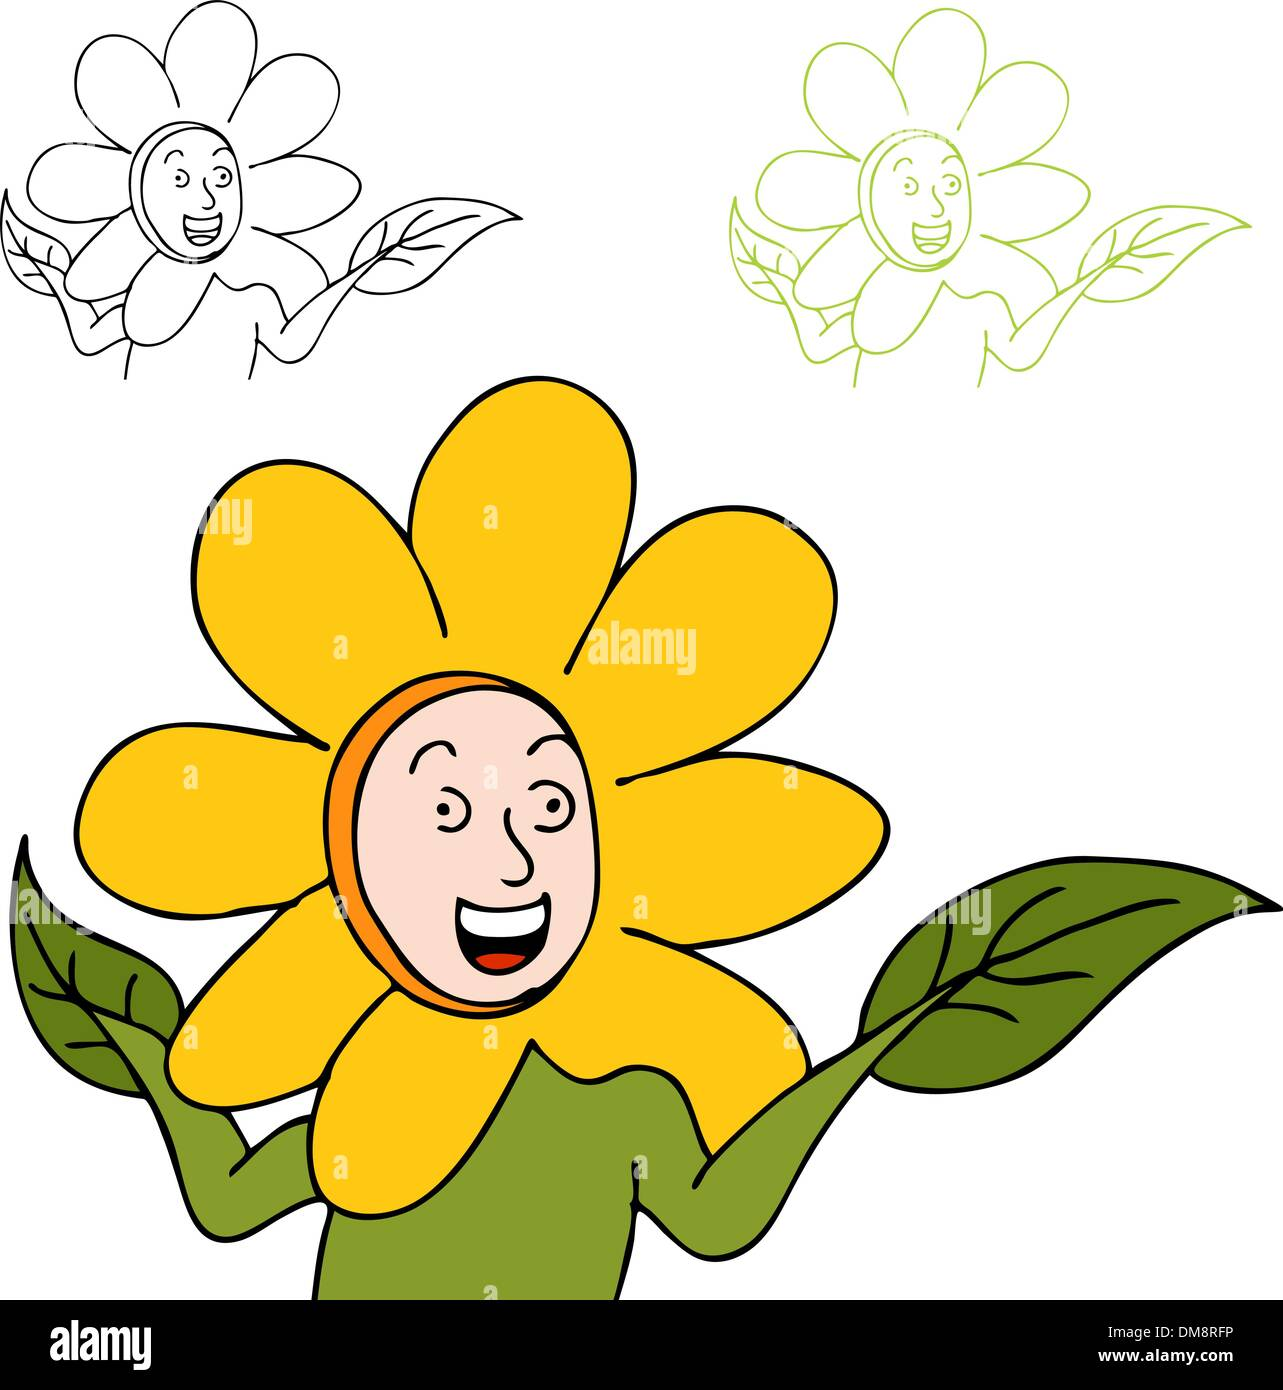 Cartoon Daisy Flower Image Cut Out Stock Images Pictures Alamy